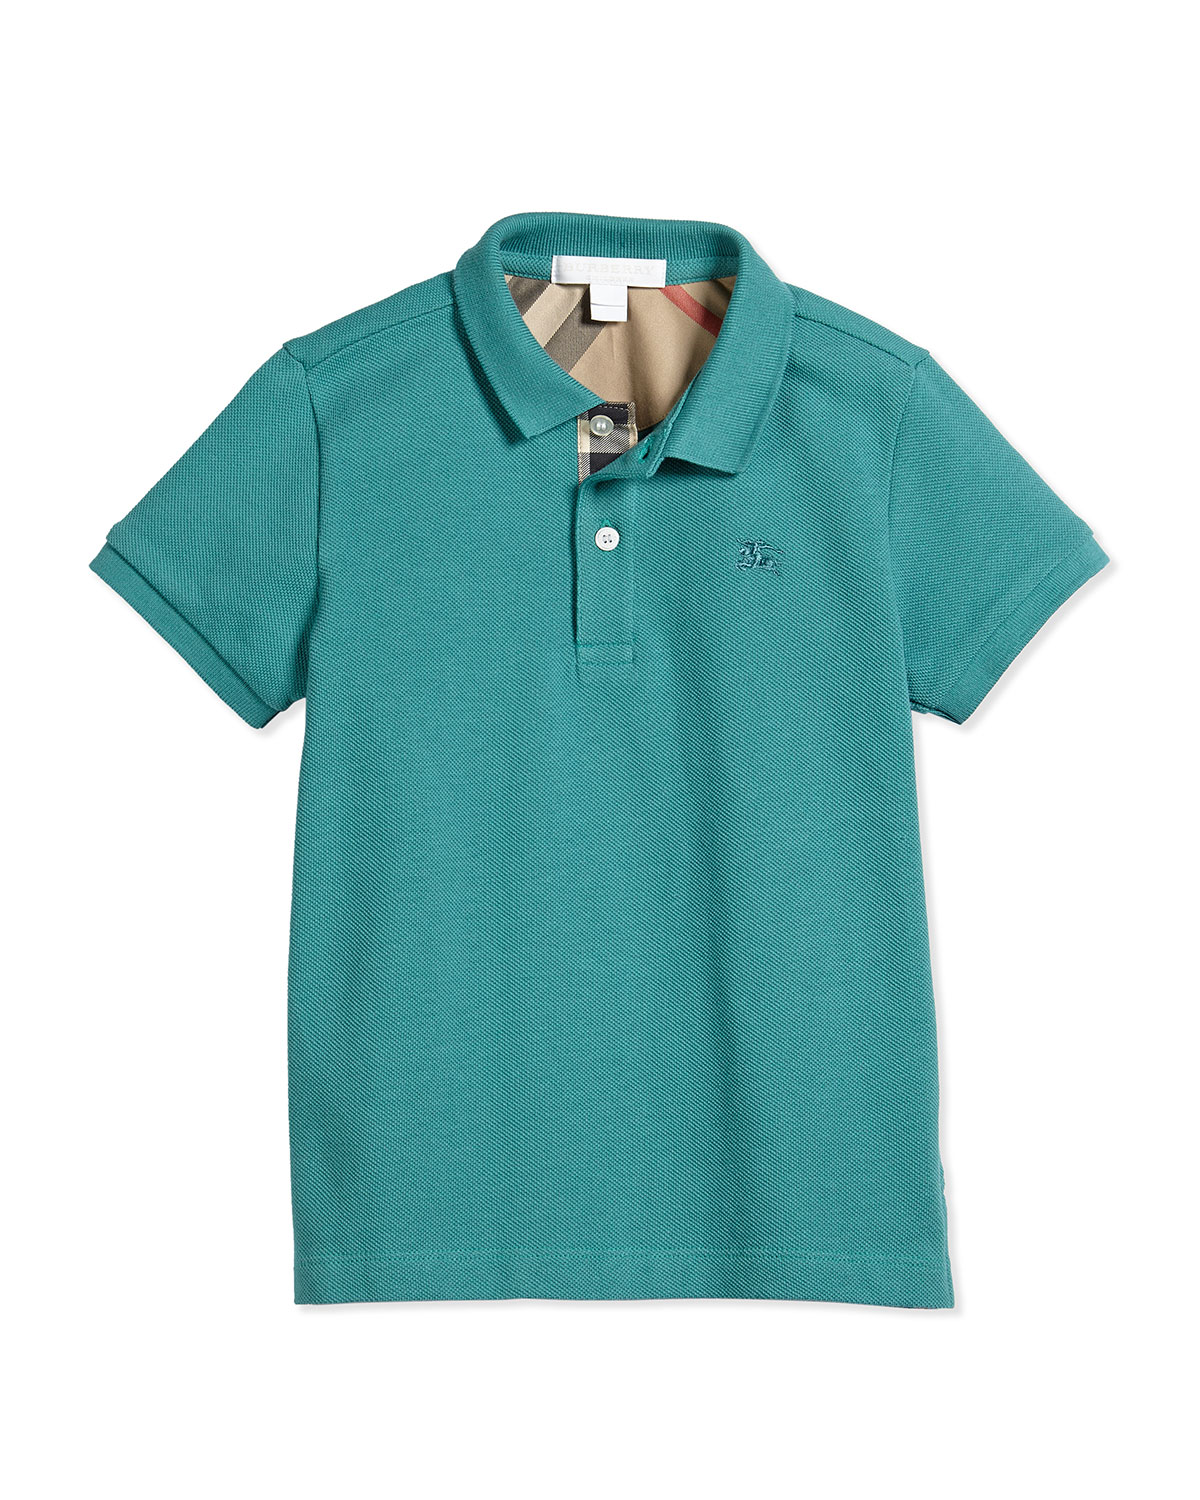 Short-Sleeve Pique Polo Shirt, Aqua Green, Size 4-14